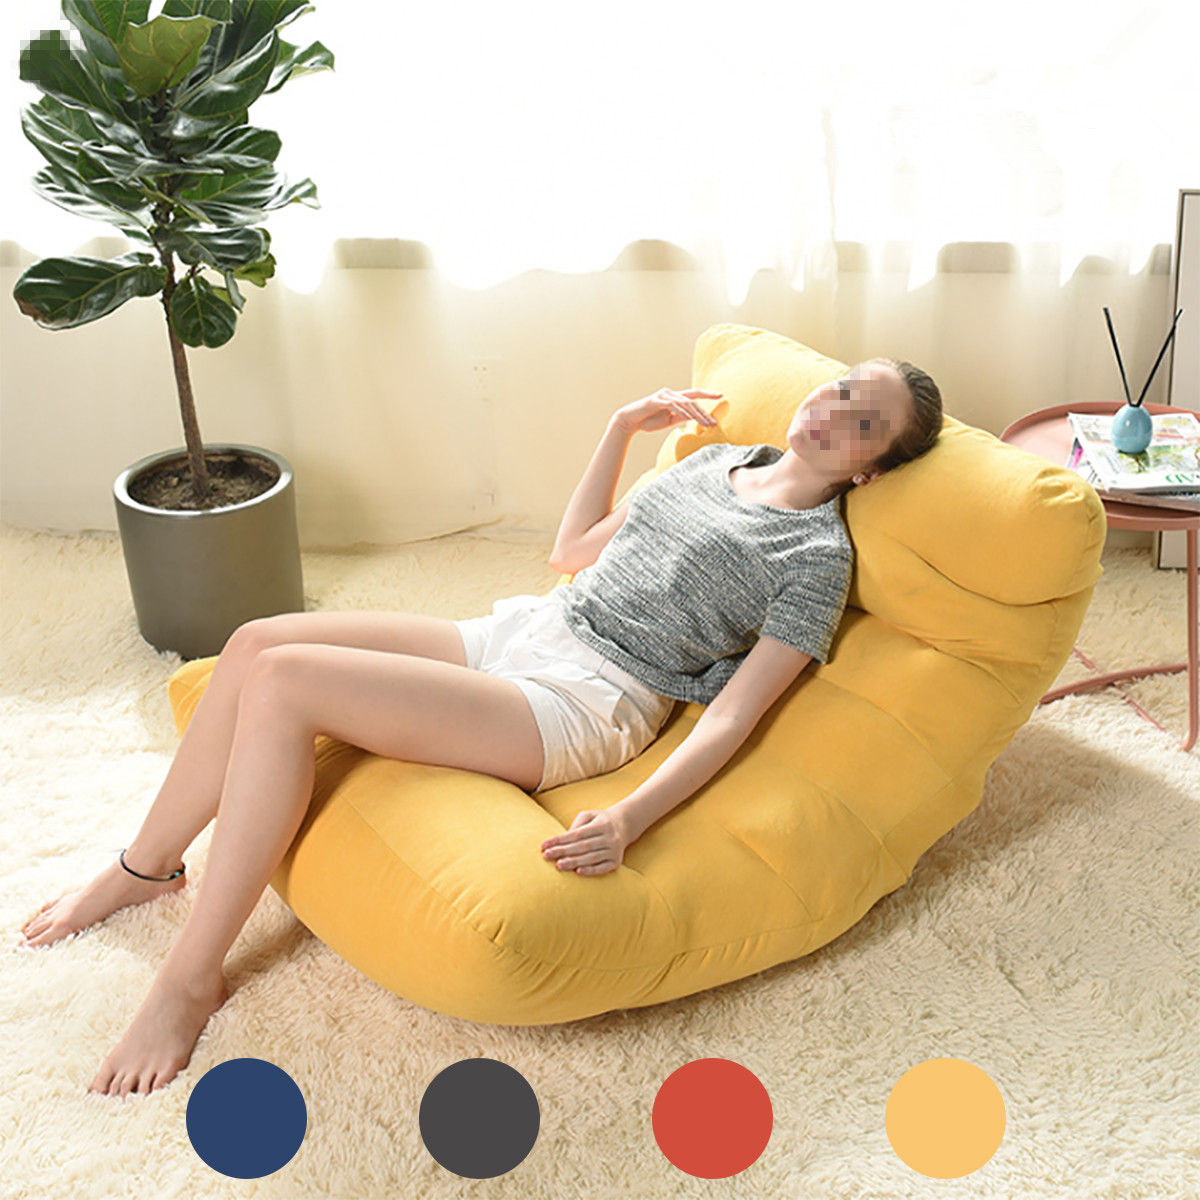 No Filling Bean Bag Sofa Cover Chairs Lazy Bed BeanBag Sofas Cotton Cloth Lounger Seat Pouf Puff Couch Tatami Home Room YellowNo Filling Bean Bag Sofa Cover Chairs Lazy Bed BeanBag Sofas Cotton Cloth Lounger Seat Pouf Puff Couch Tatami Home Room Yellow